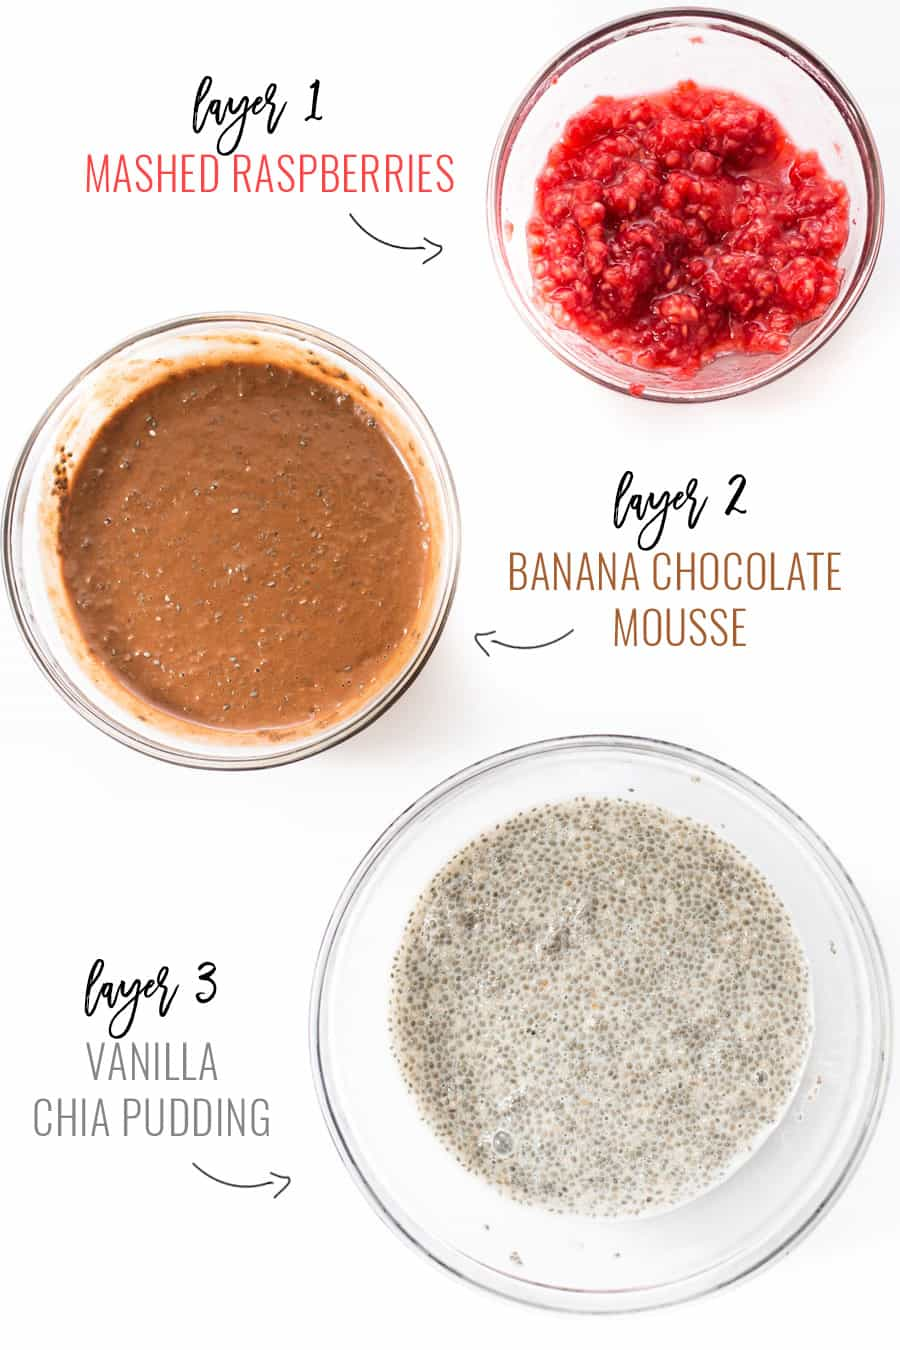 This AMAZING Layered Chia Parfaits have chocolate, chia pudding and a raspberry topping!